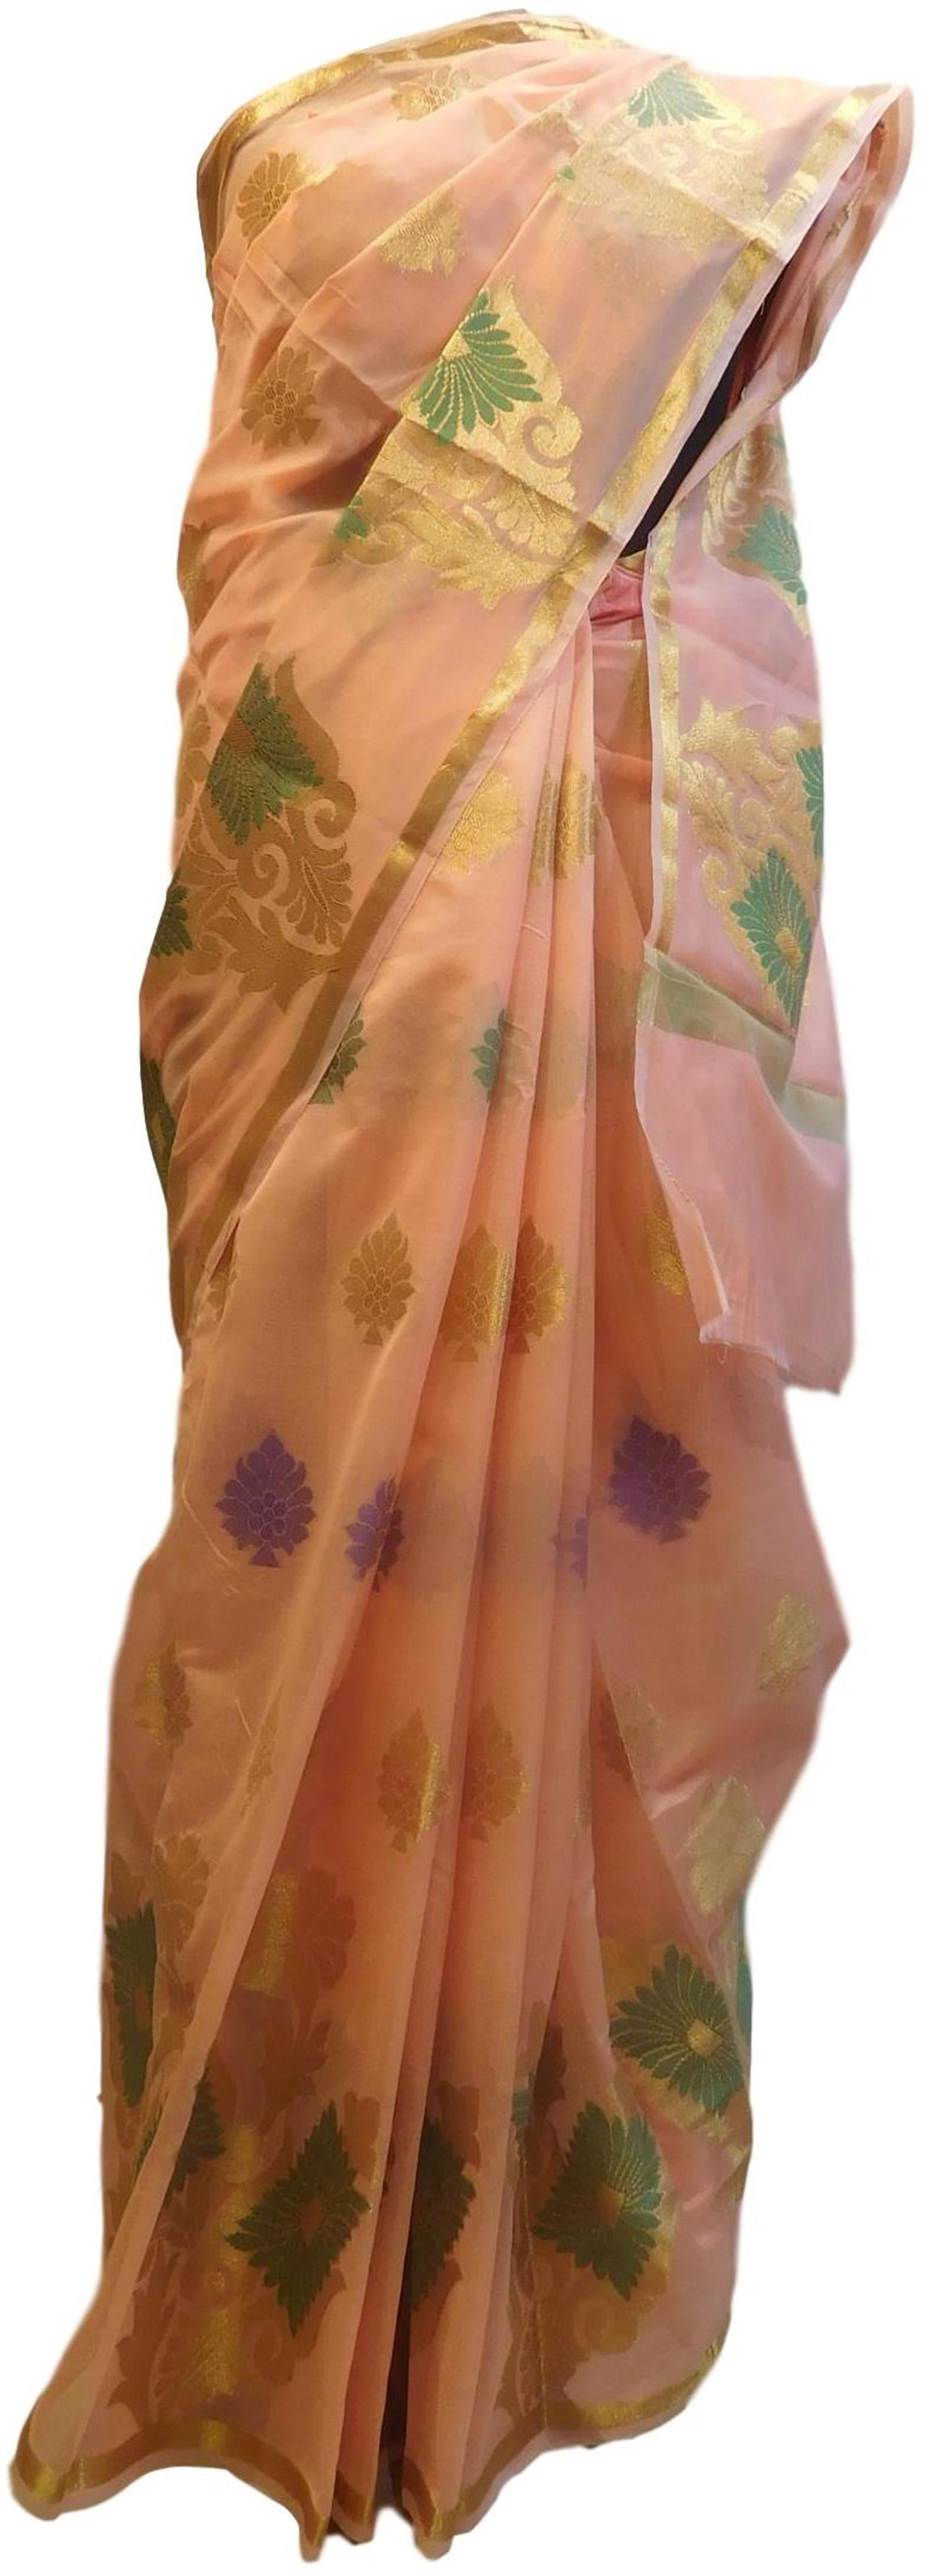 Peach Traditional Designer Wedding Hand Weaven Pure Benarasi Zari Work Saree Sari With Blouse BH102D